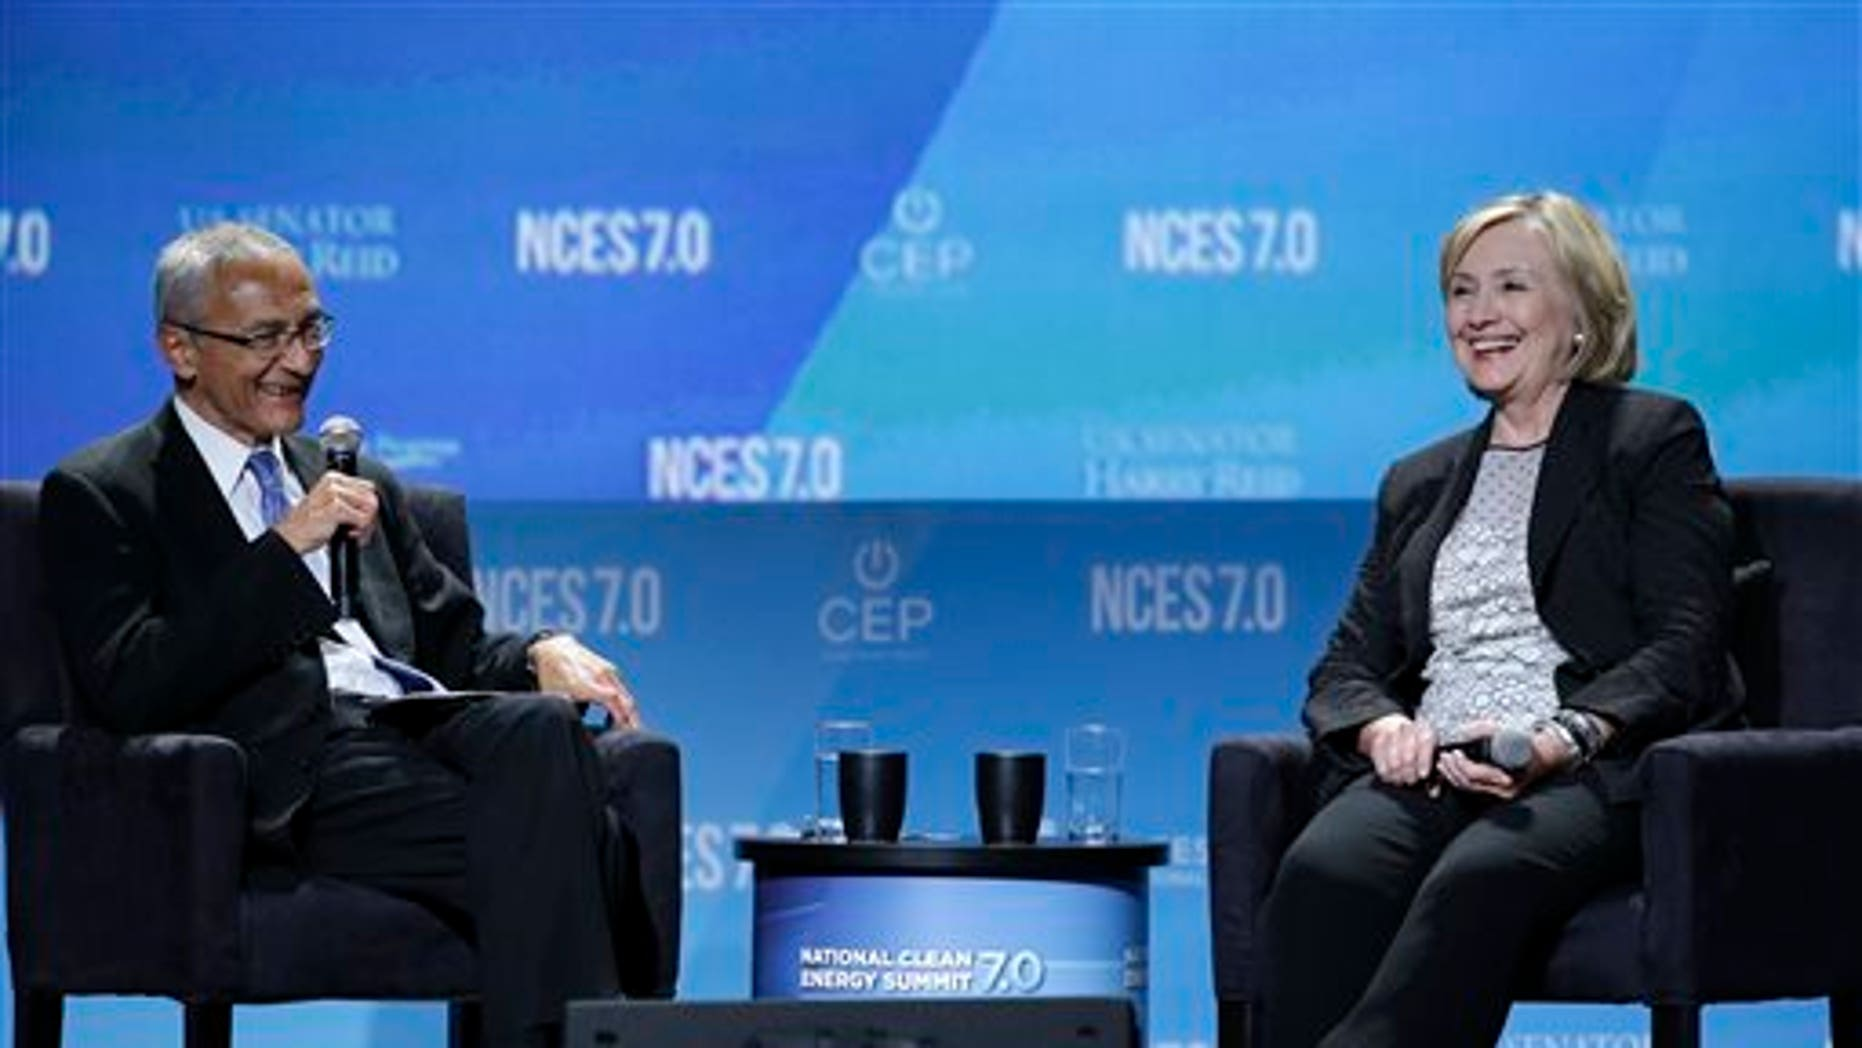 Former Secretary of State Hillary Rodham Clinton, right, takes questions from John Podesta, counselor to President Barack Obama, at the National Clean Energy Summit Thursday, Sept. 4, 2014, in Las Vegas. (AP Photo/John Locher)